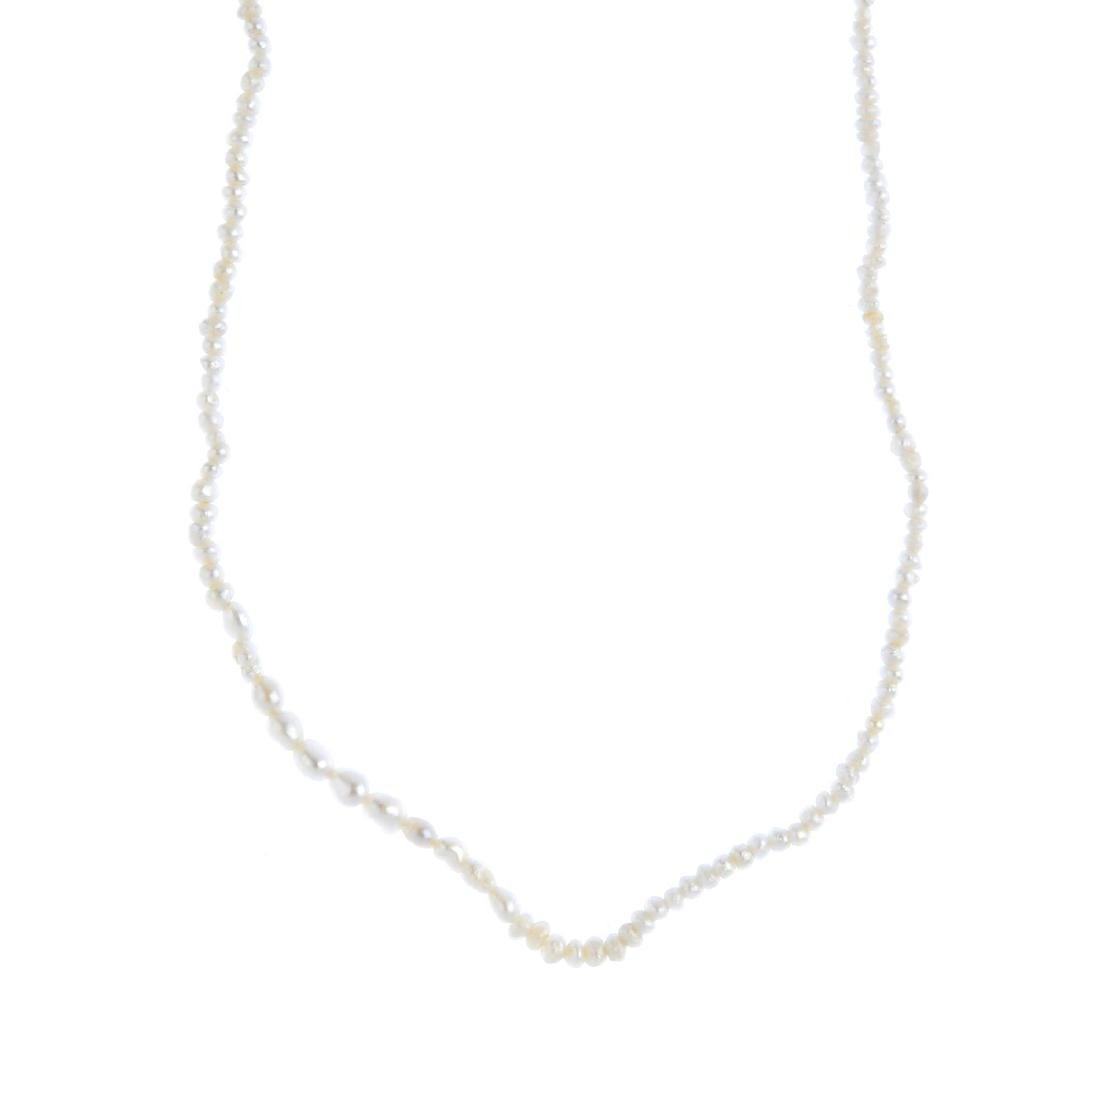 A seed pearl single-strand necklace. Comprising a